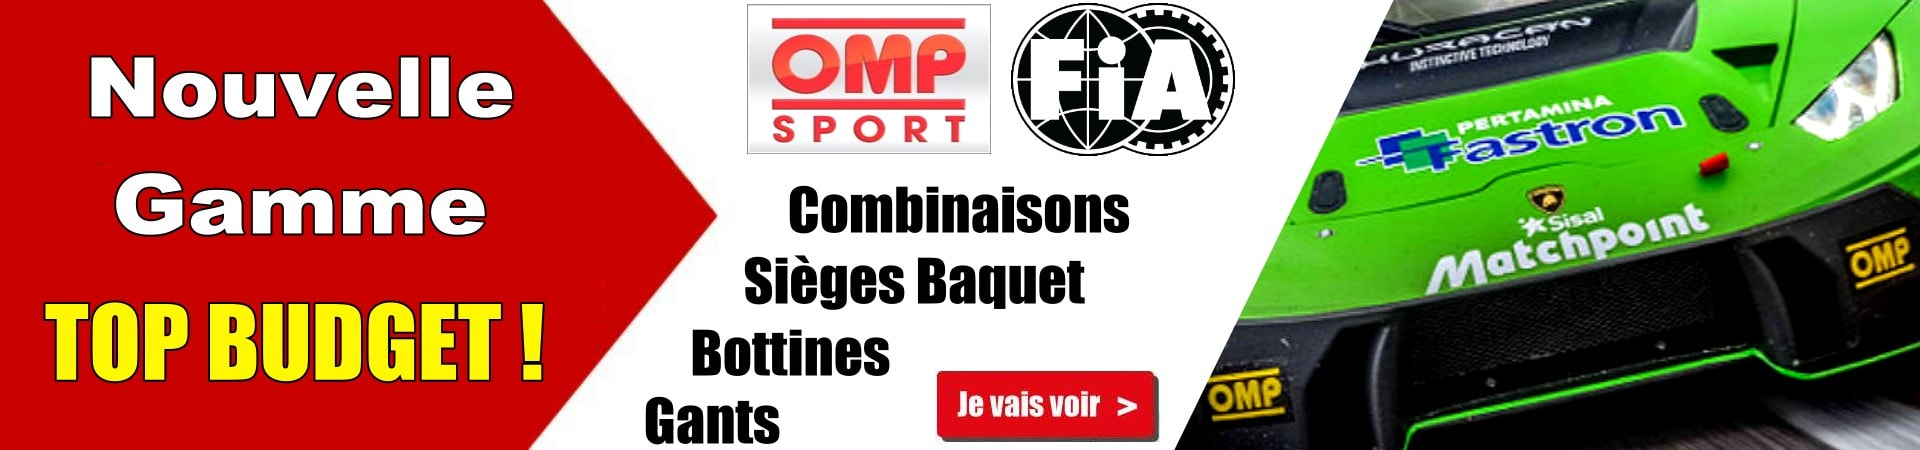 Nouvelle gamme TOP BUDGET OMP SPORT